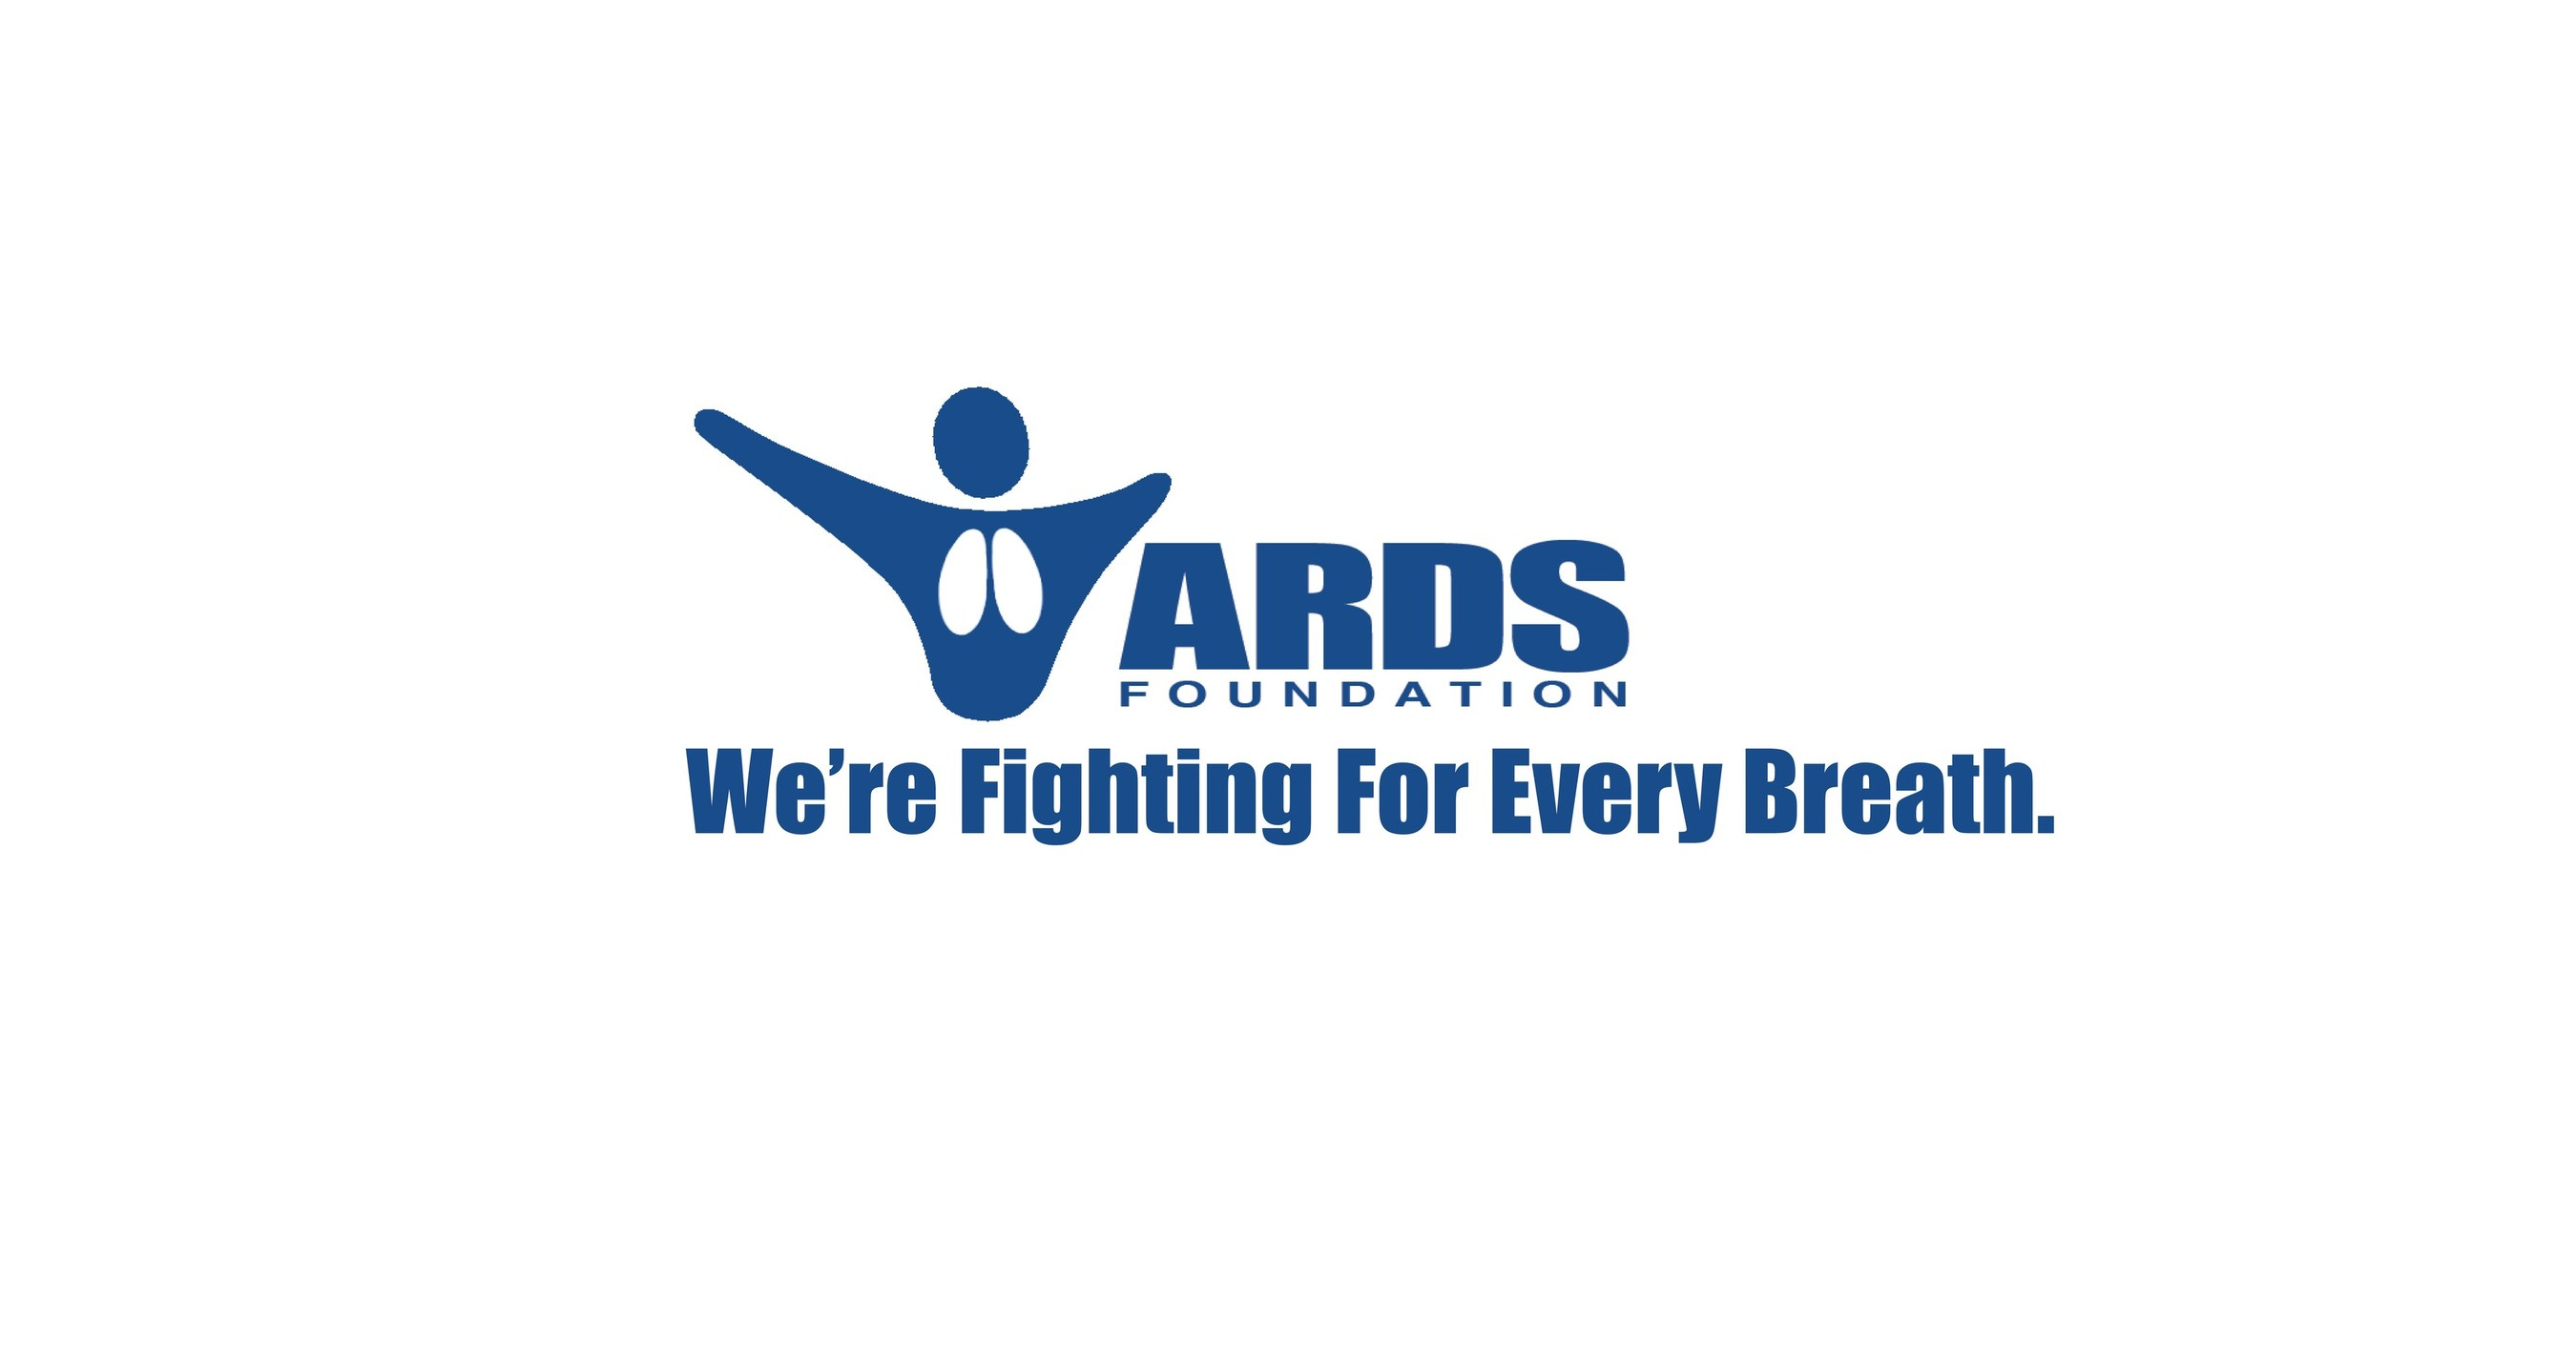 ARDS Foundation Logo jpg?p=facebook.